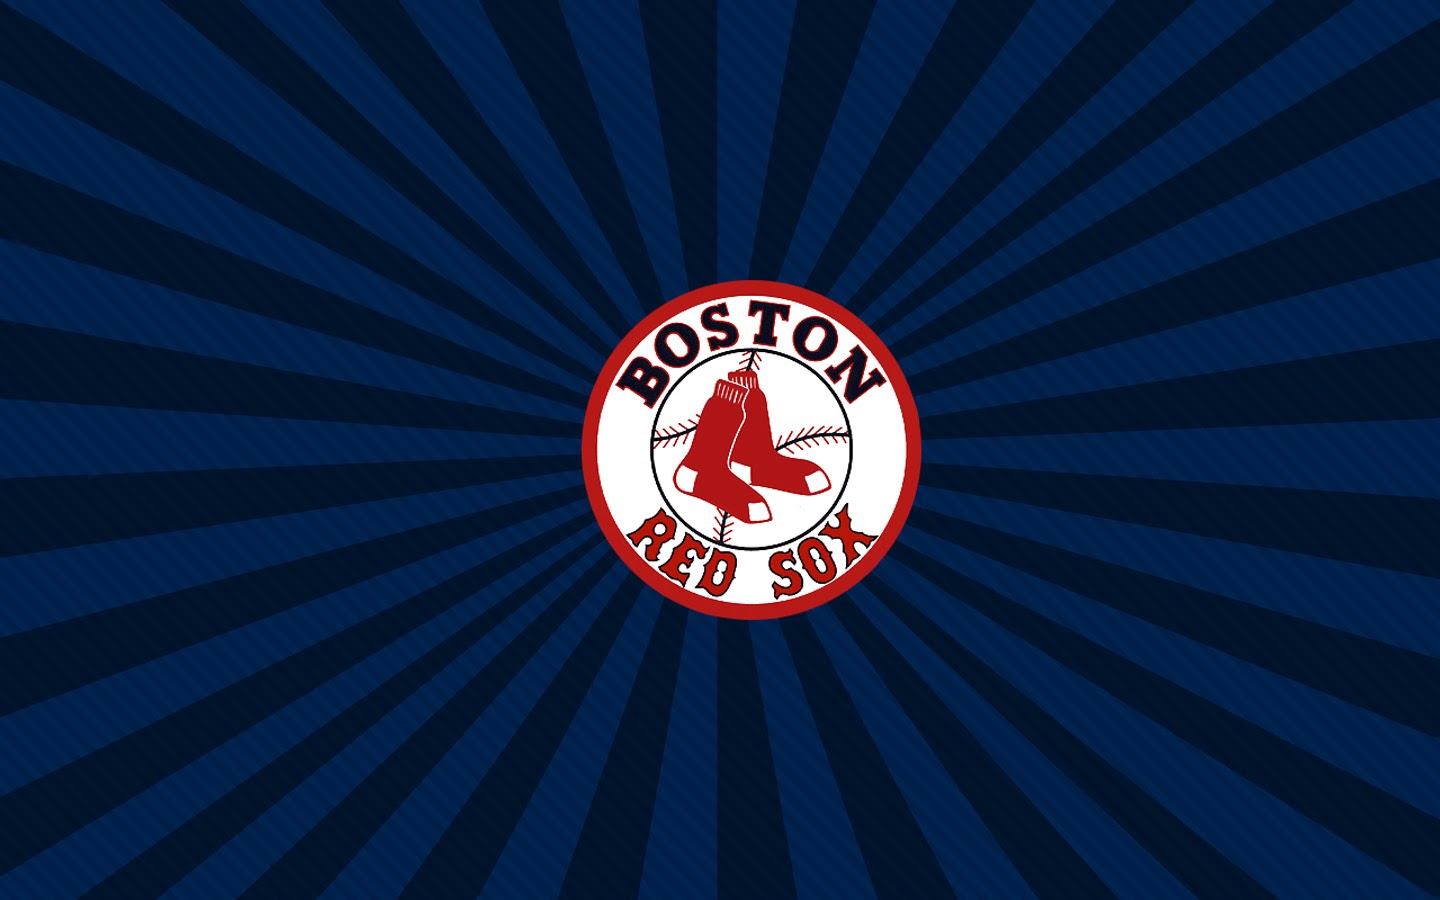 boston red sox wallpaper widescreen - photo #37